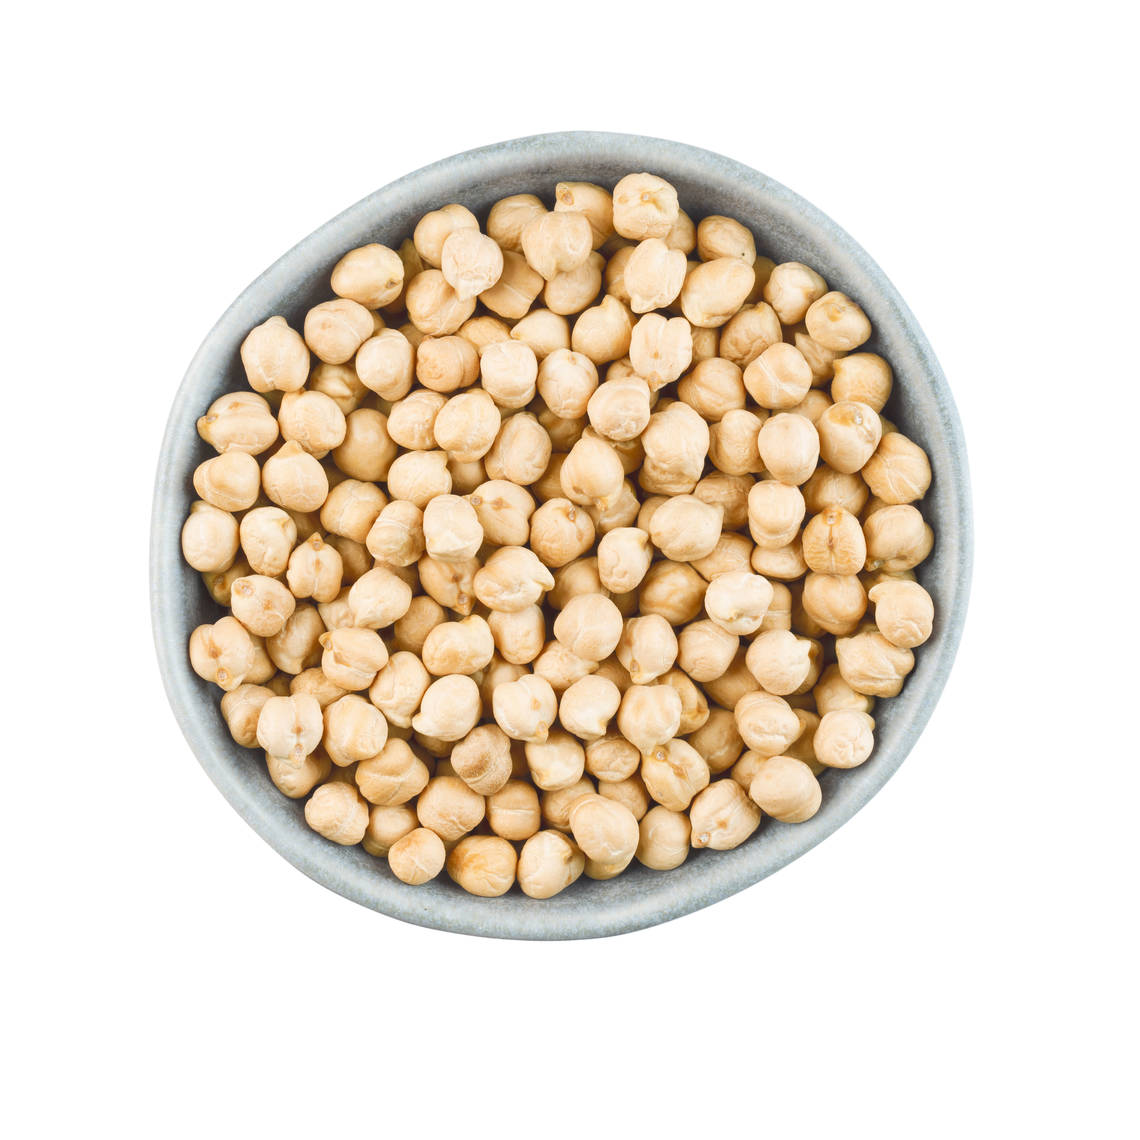 Chickpeas – also known by their popular Spanish name, garbanzo beans – are versatile, storable pulses with high protein, fibre, and iron content.